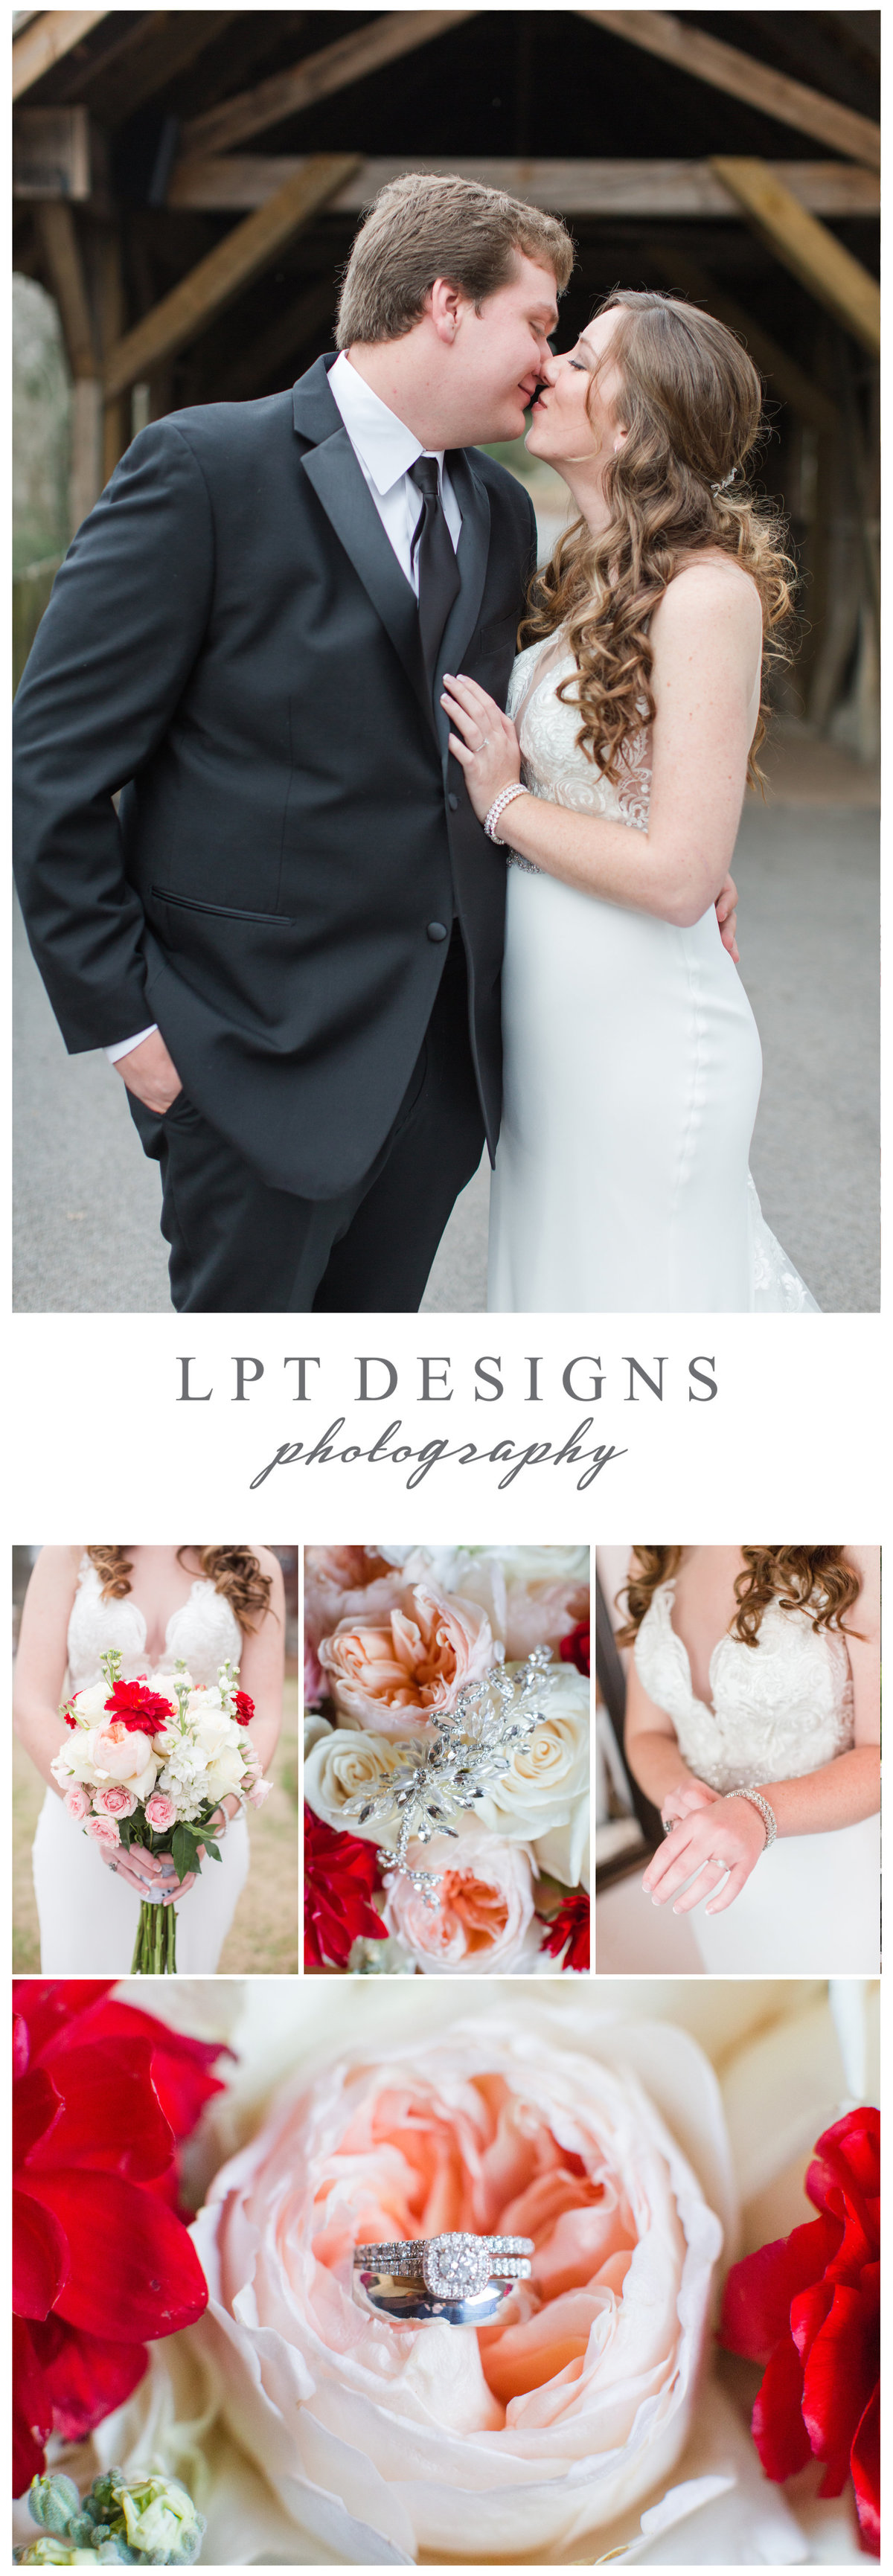 lpt_designs_photography_lydia_thrift_gadsden_alabama_fine_art_wedding_photographer_eb_1